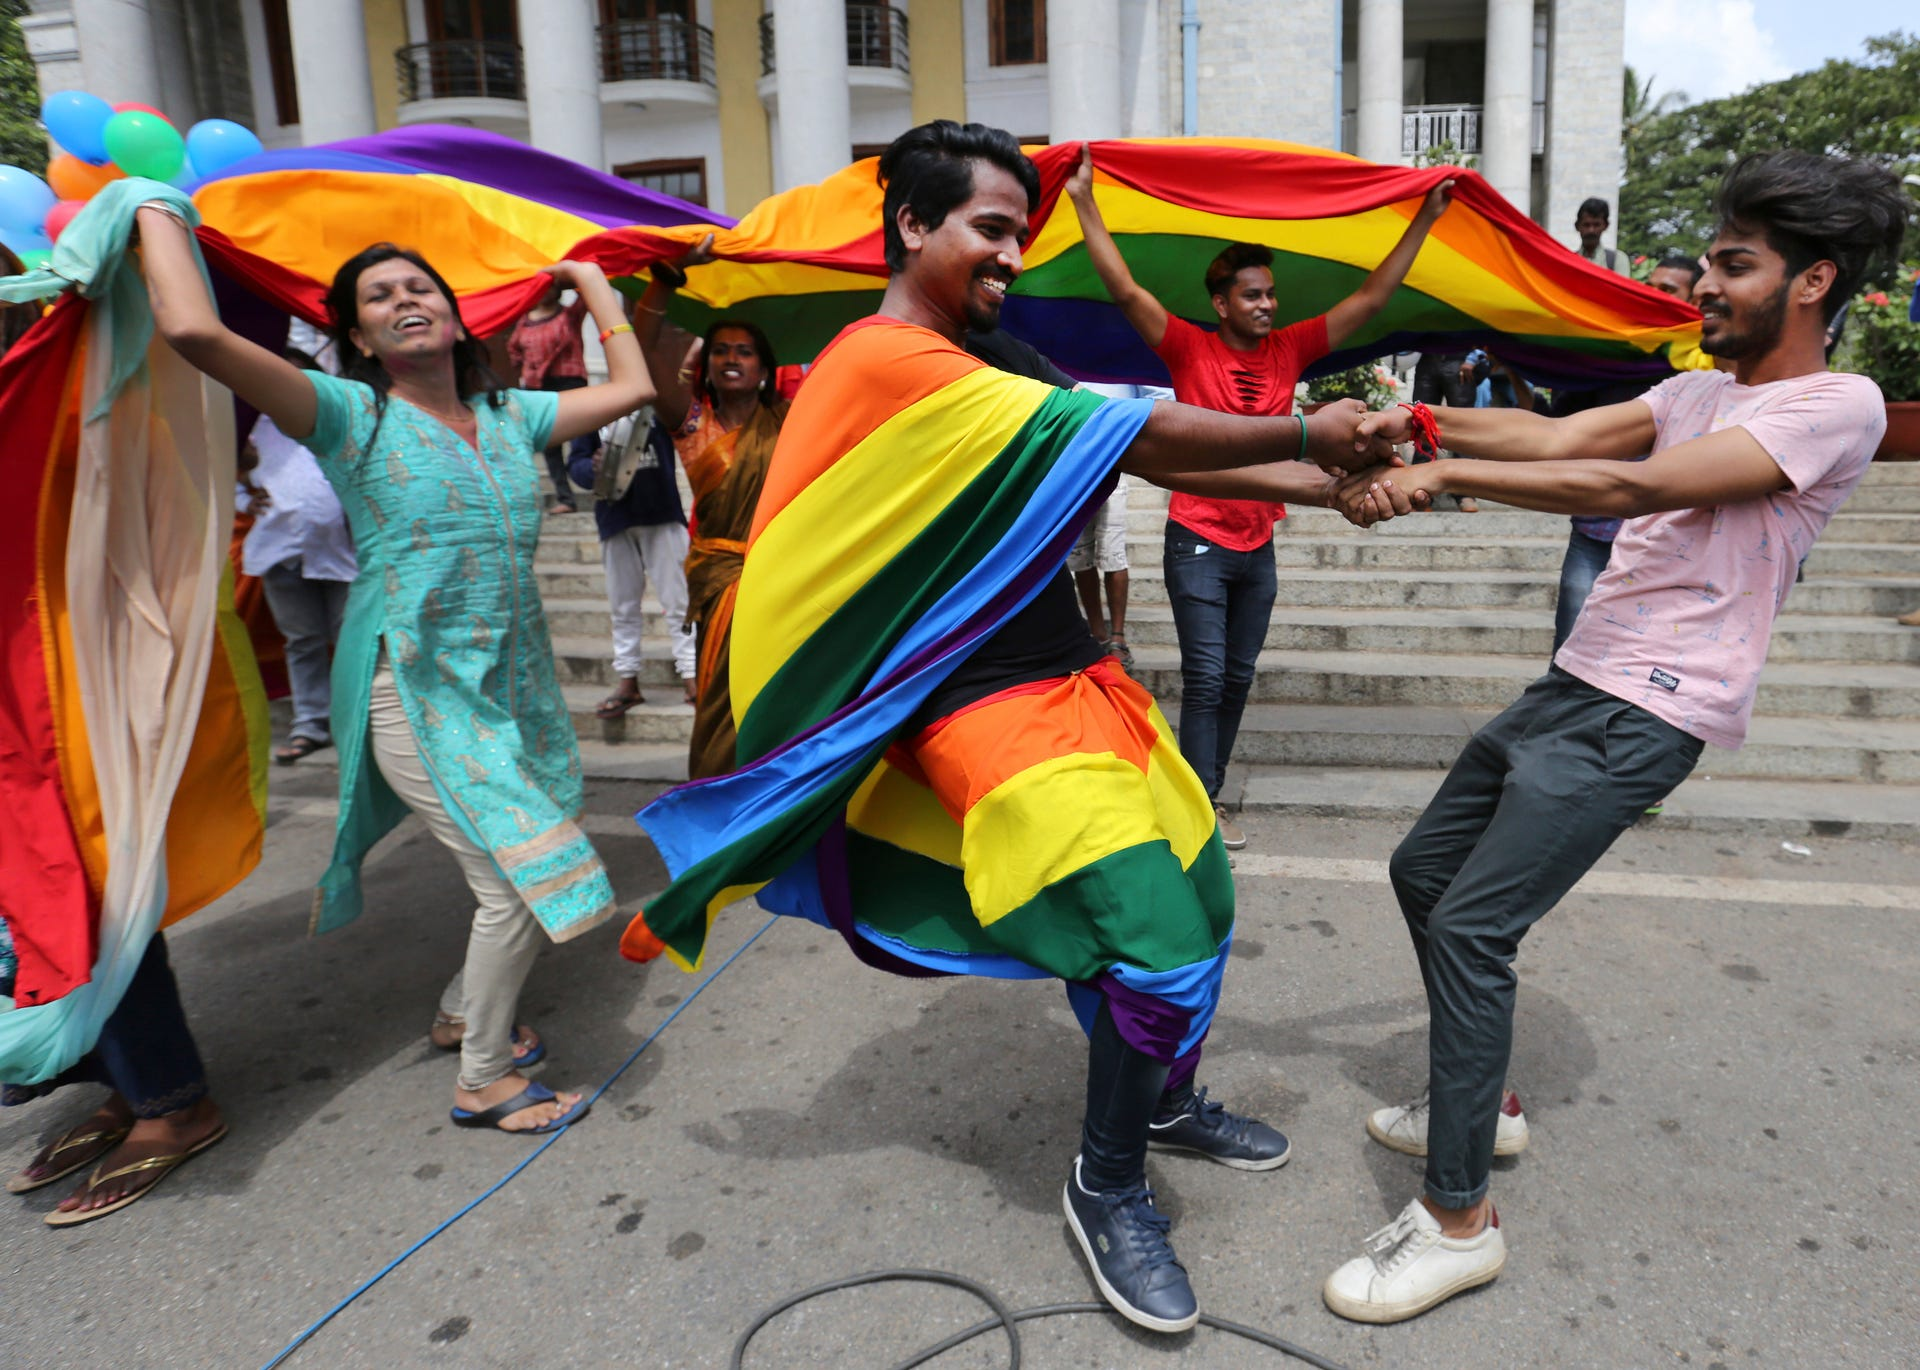 Gay rights supporters in India celebrate court ruling